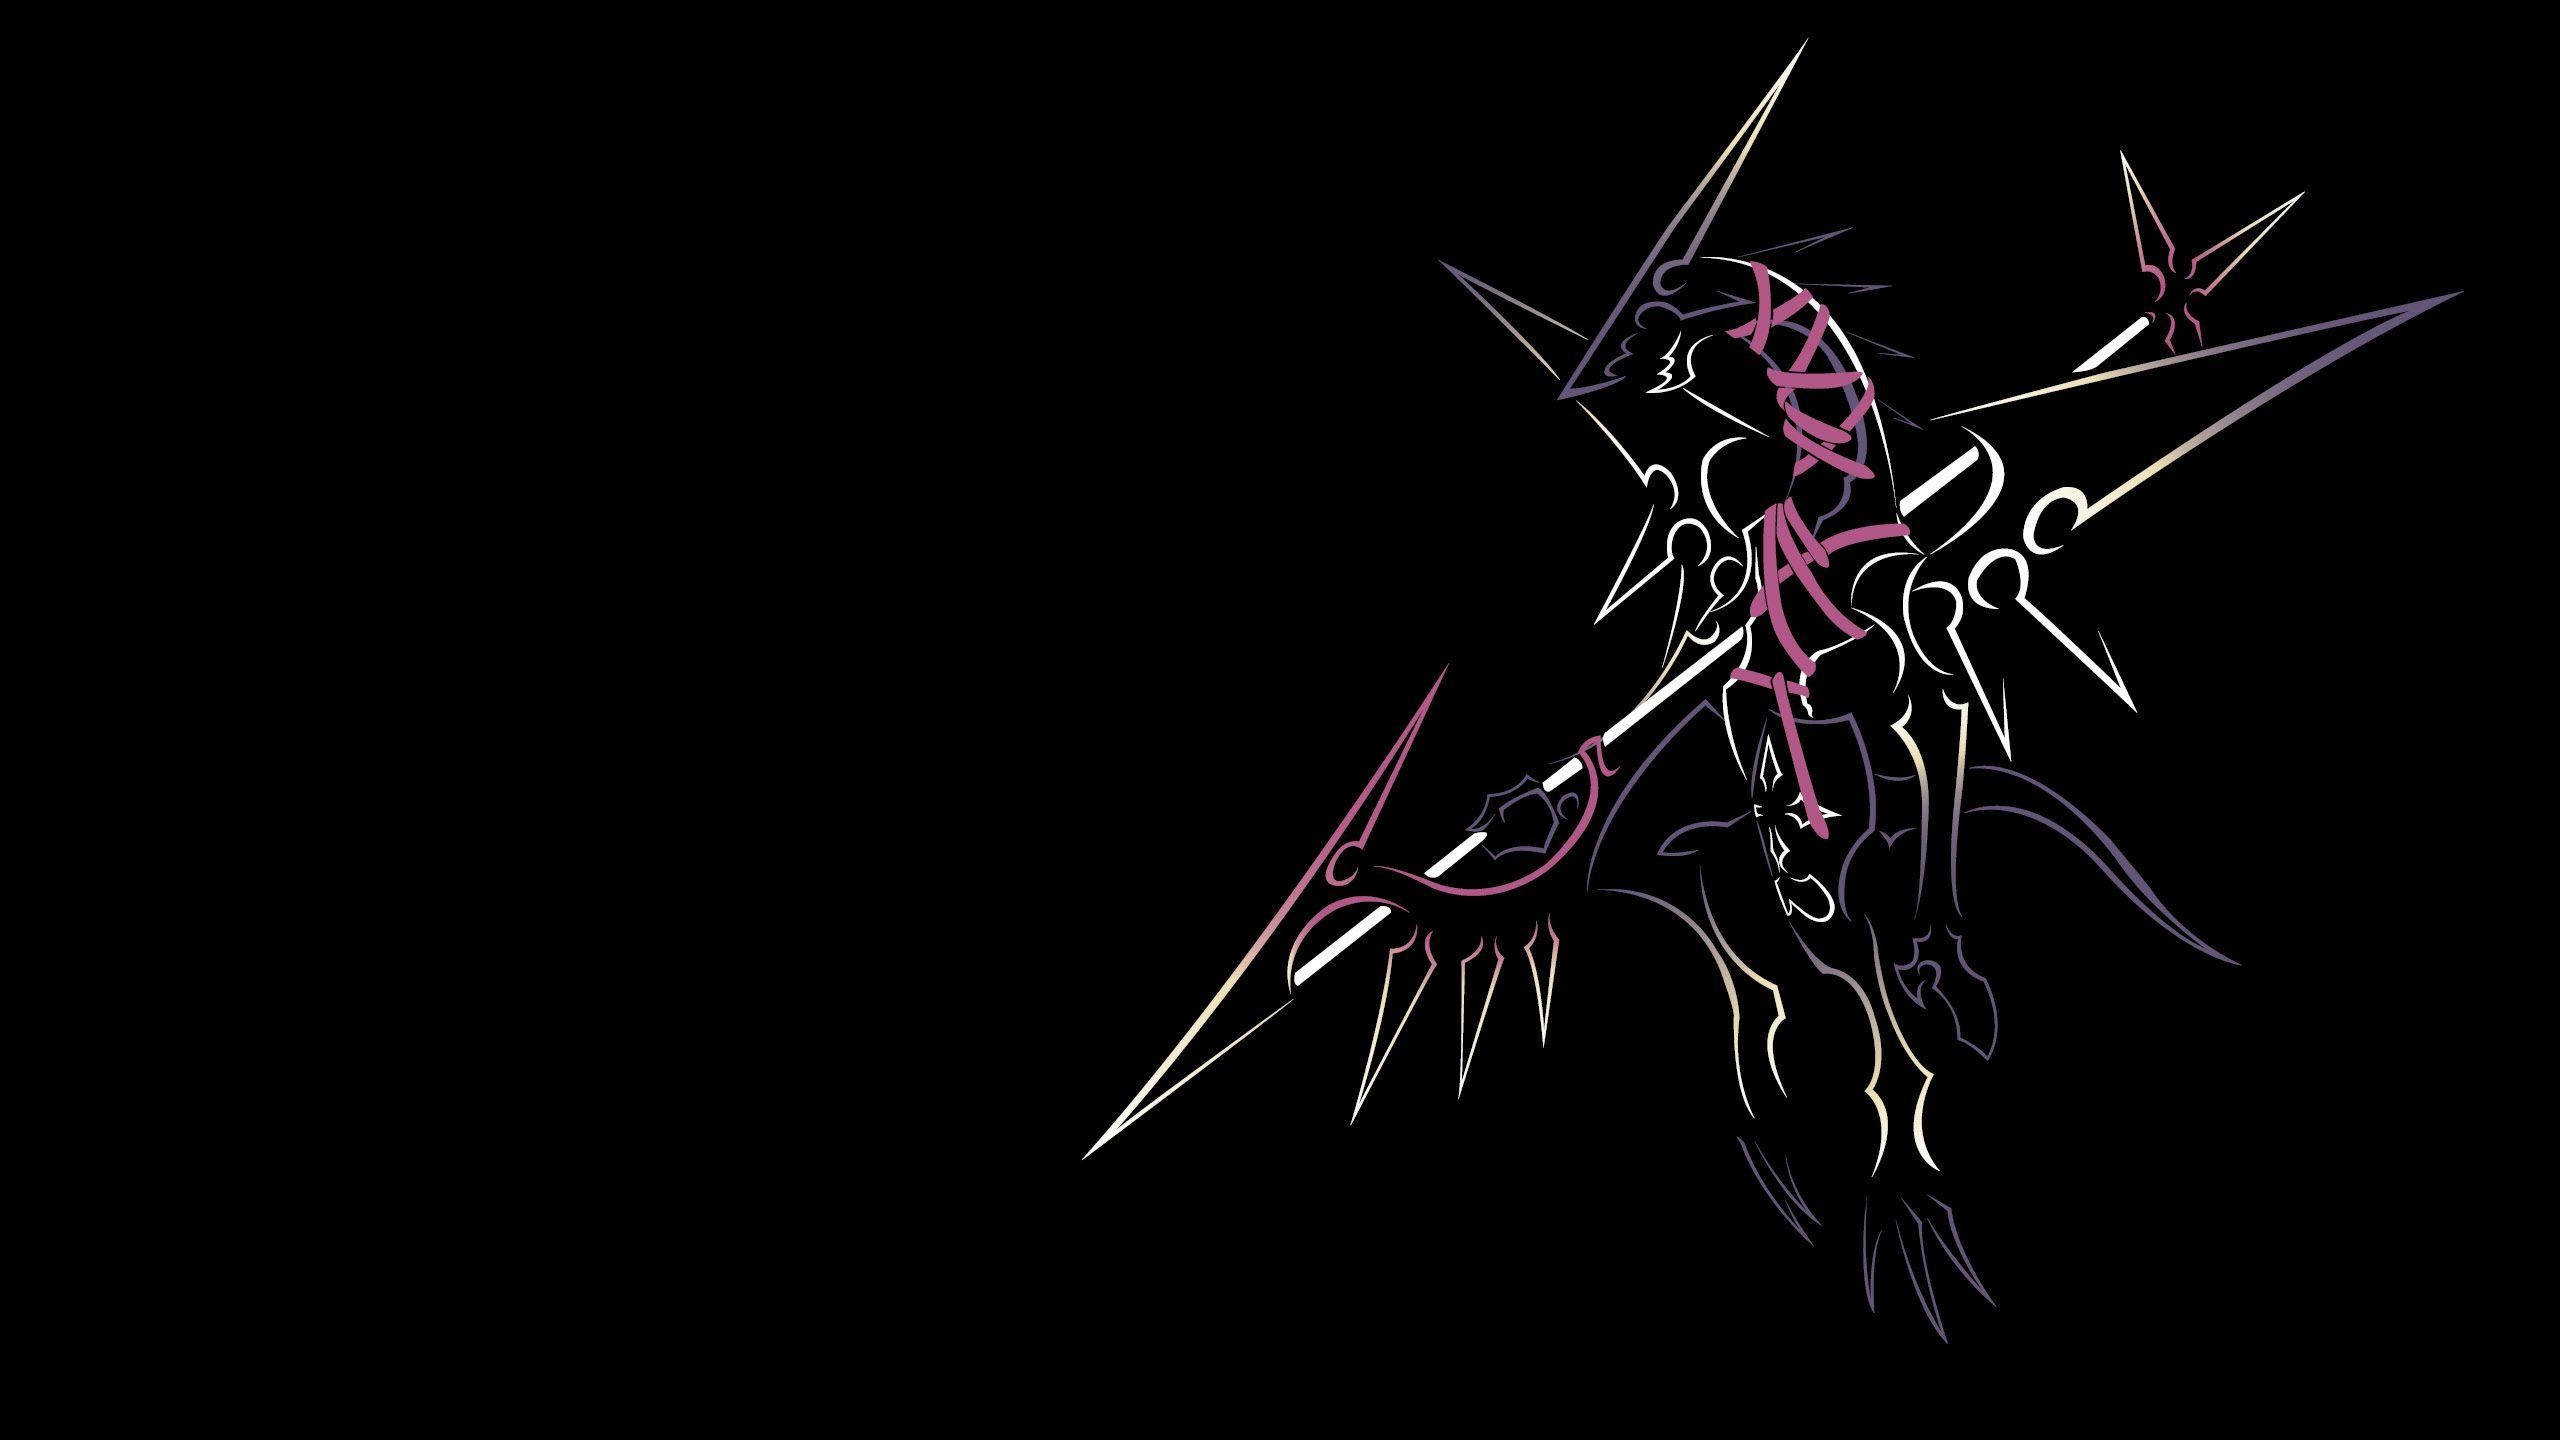 Res: 2560x1440, Wallpapers For > Kingdom Hearts 3 Hd Wallpaper